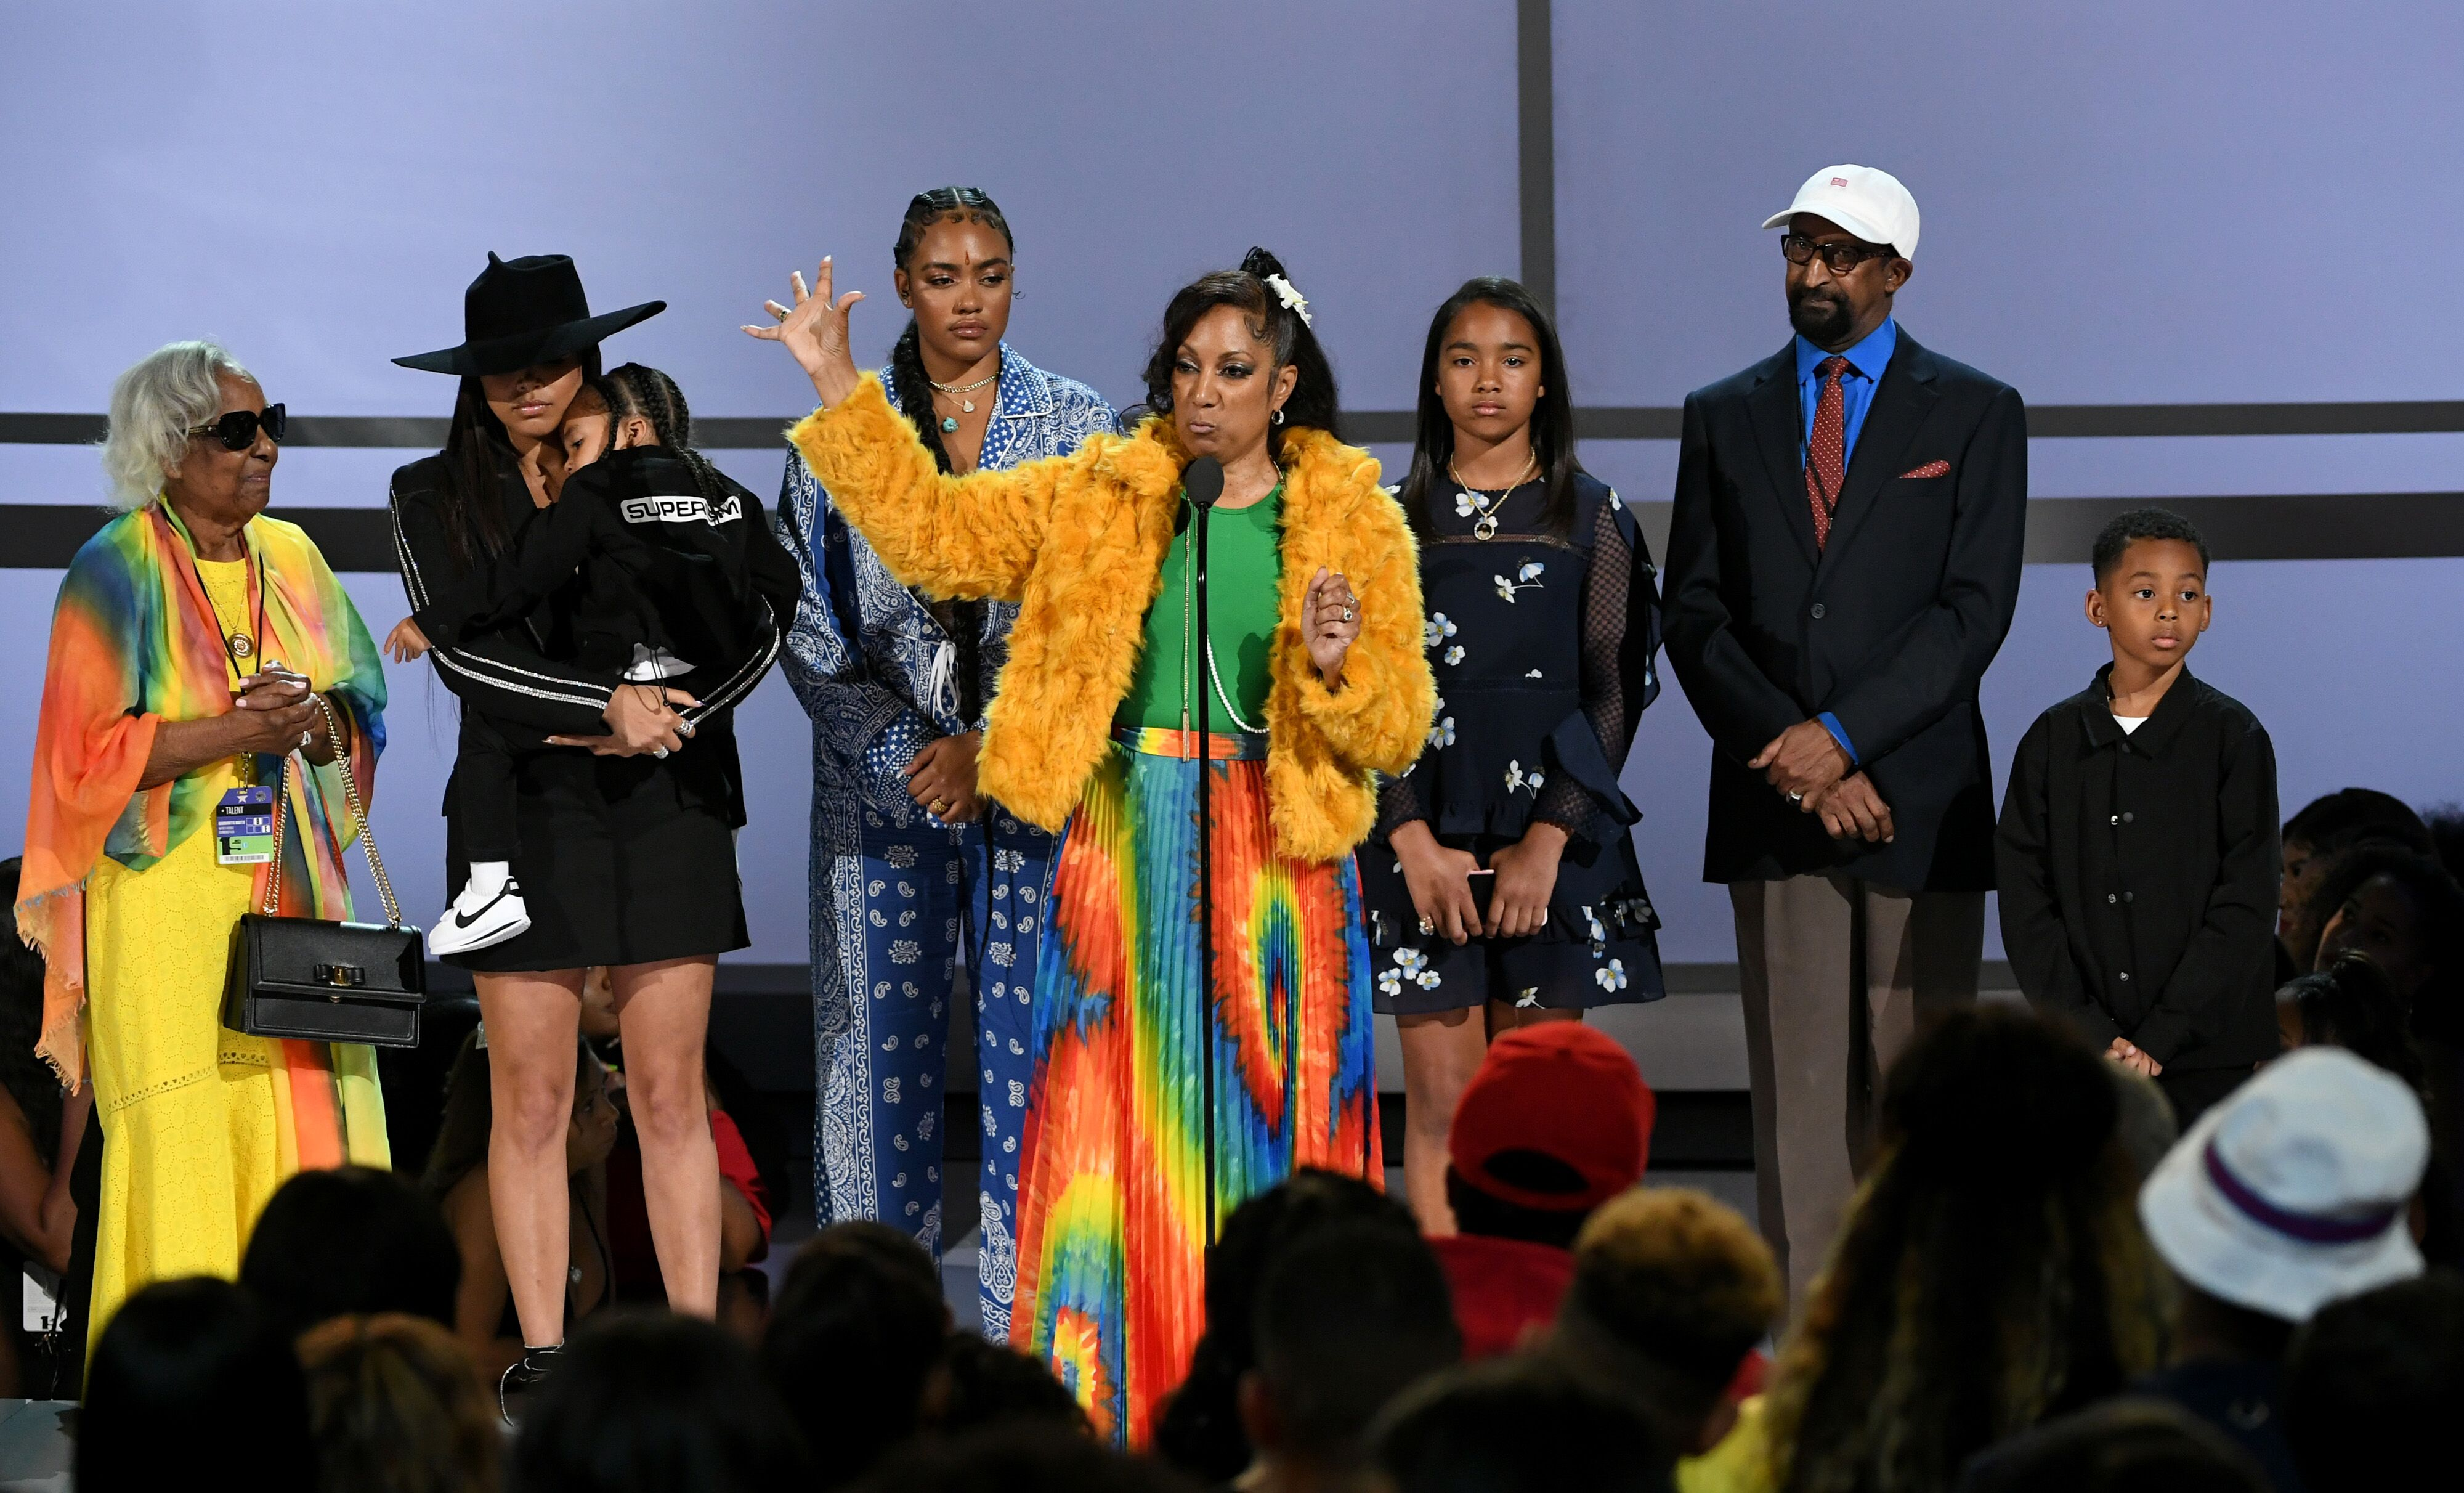 Nipsey Hussle's family during his memorial service at the staples Center | Source: Getty Images/GlobalImagesUkraine